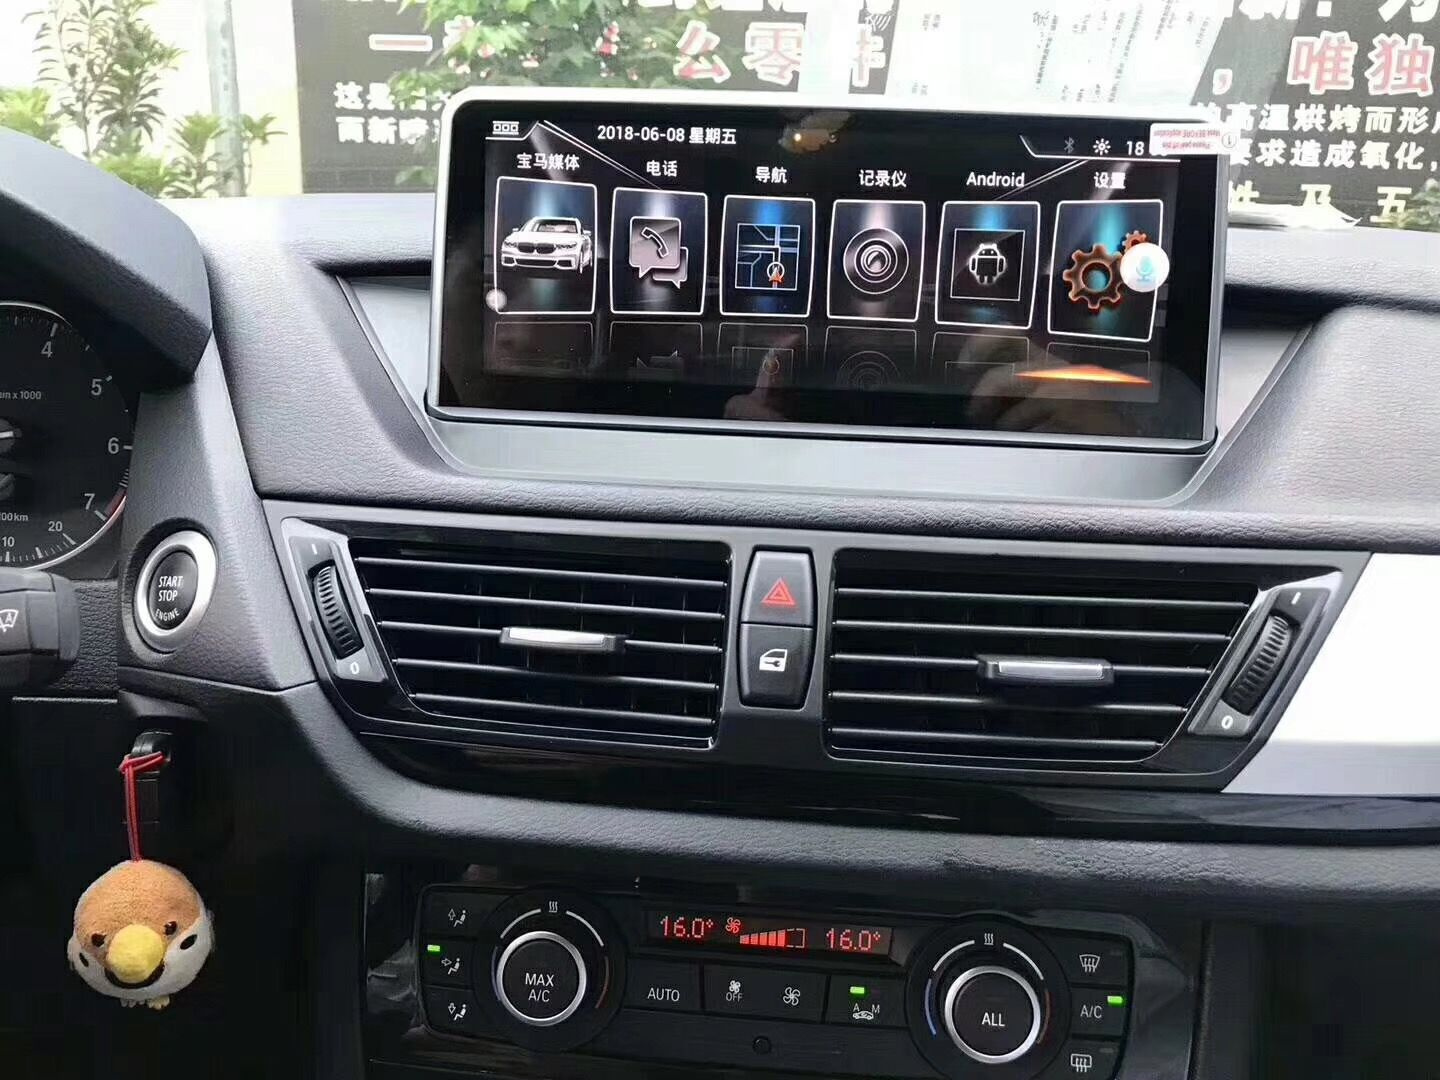 Android Navigation Radio Car Dvd Gps Player Navigation System For Bmw X1 Email Stefan Navihua Com Wechat Whatsapp 8613168020235 Car Android Navigation Gps